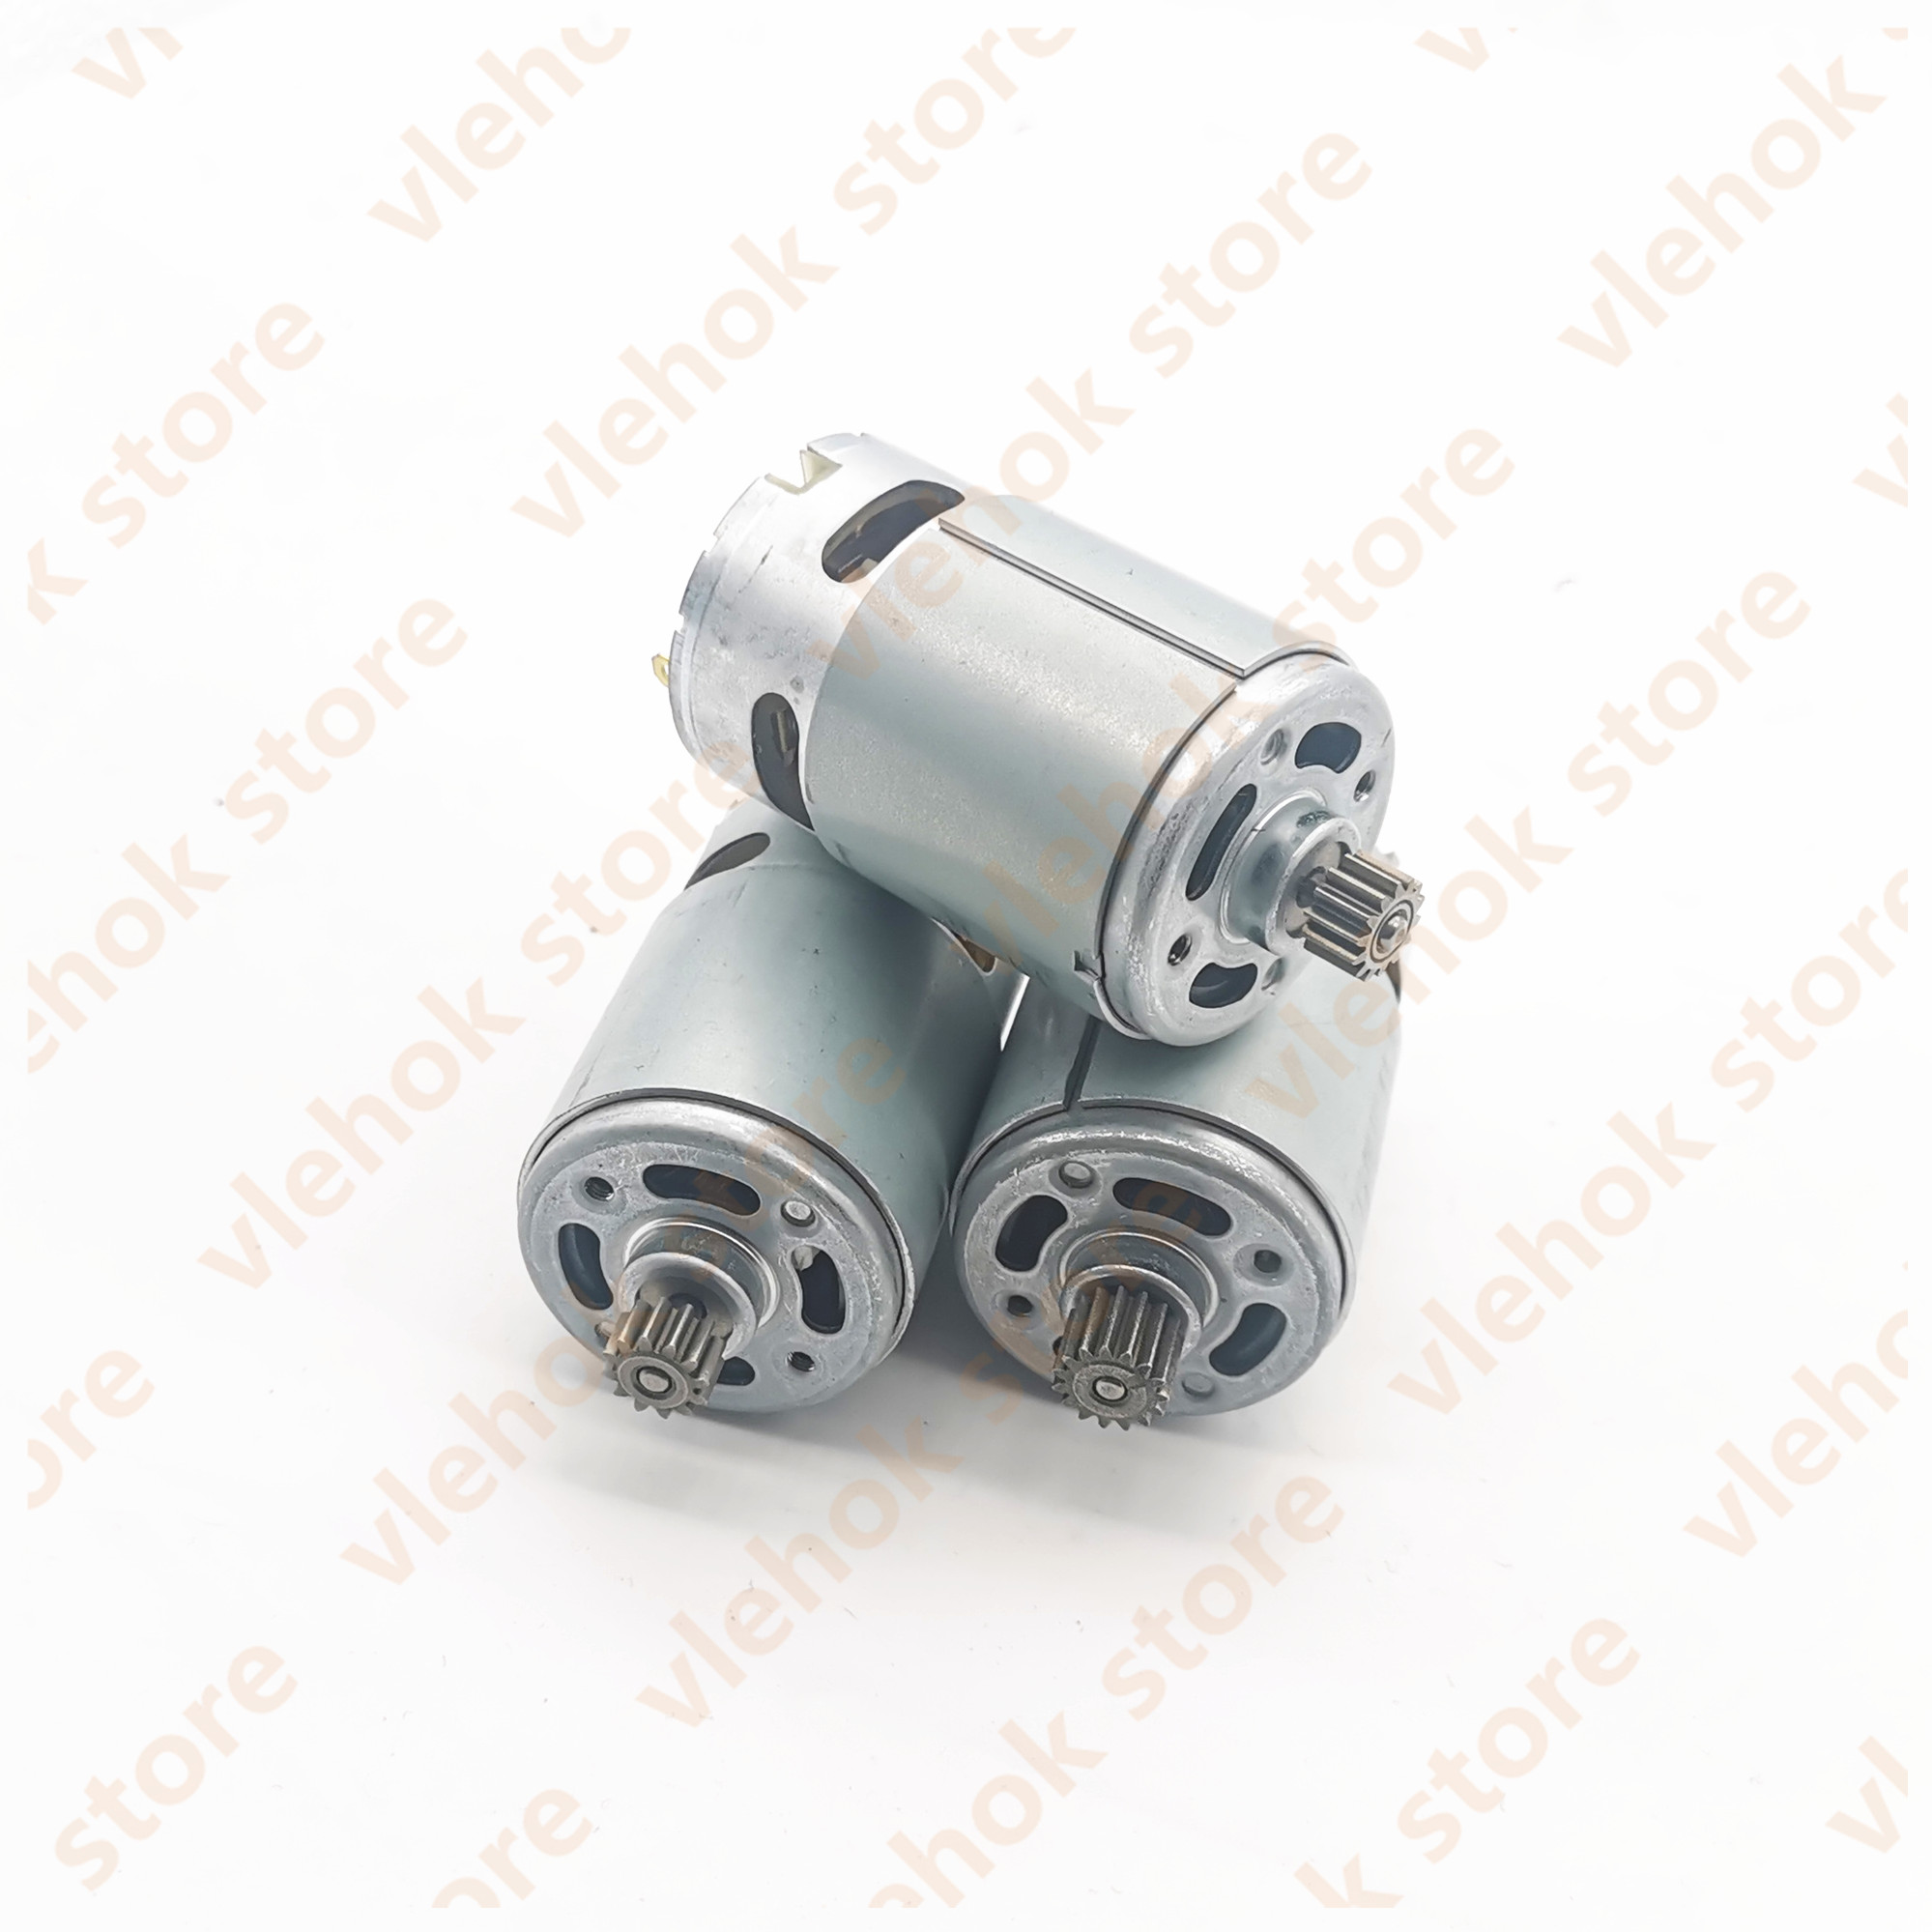 RS550 Motor 9T 11Teeth 13Teeth 14Teeth 15Teeth 10.8V 12V 14.4V 18V For BOSCH DeWALT HITACHI MAKITA METABO Milwaukee Hilti Ryobi